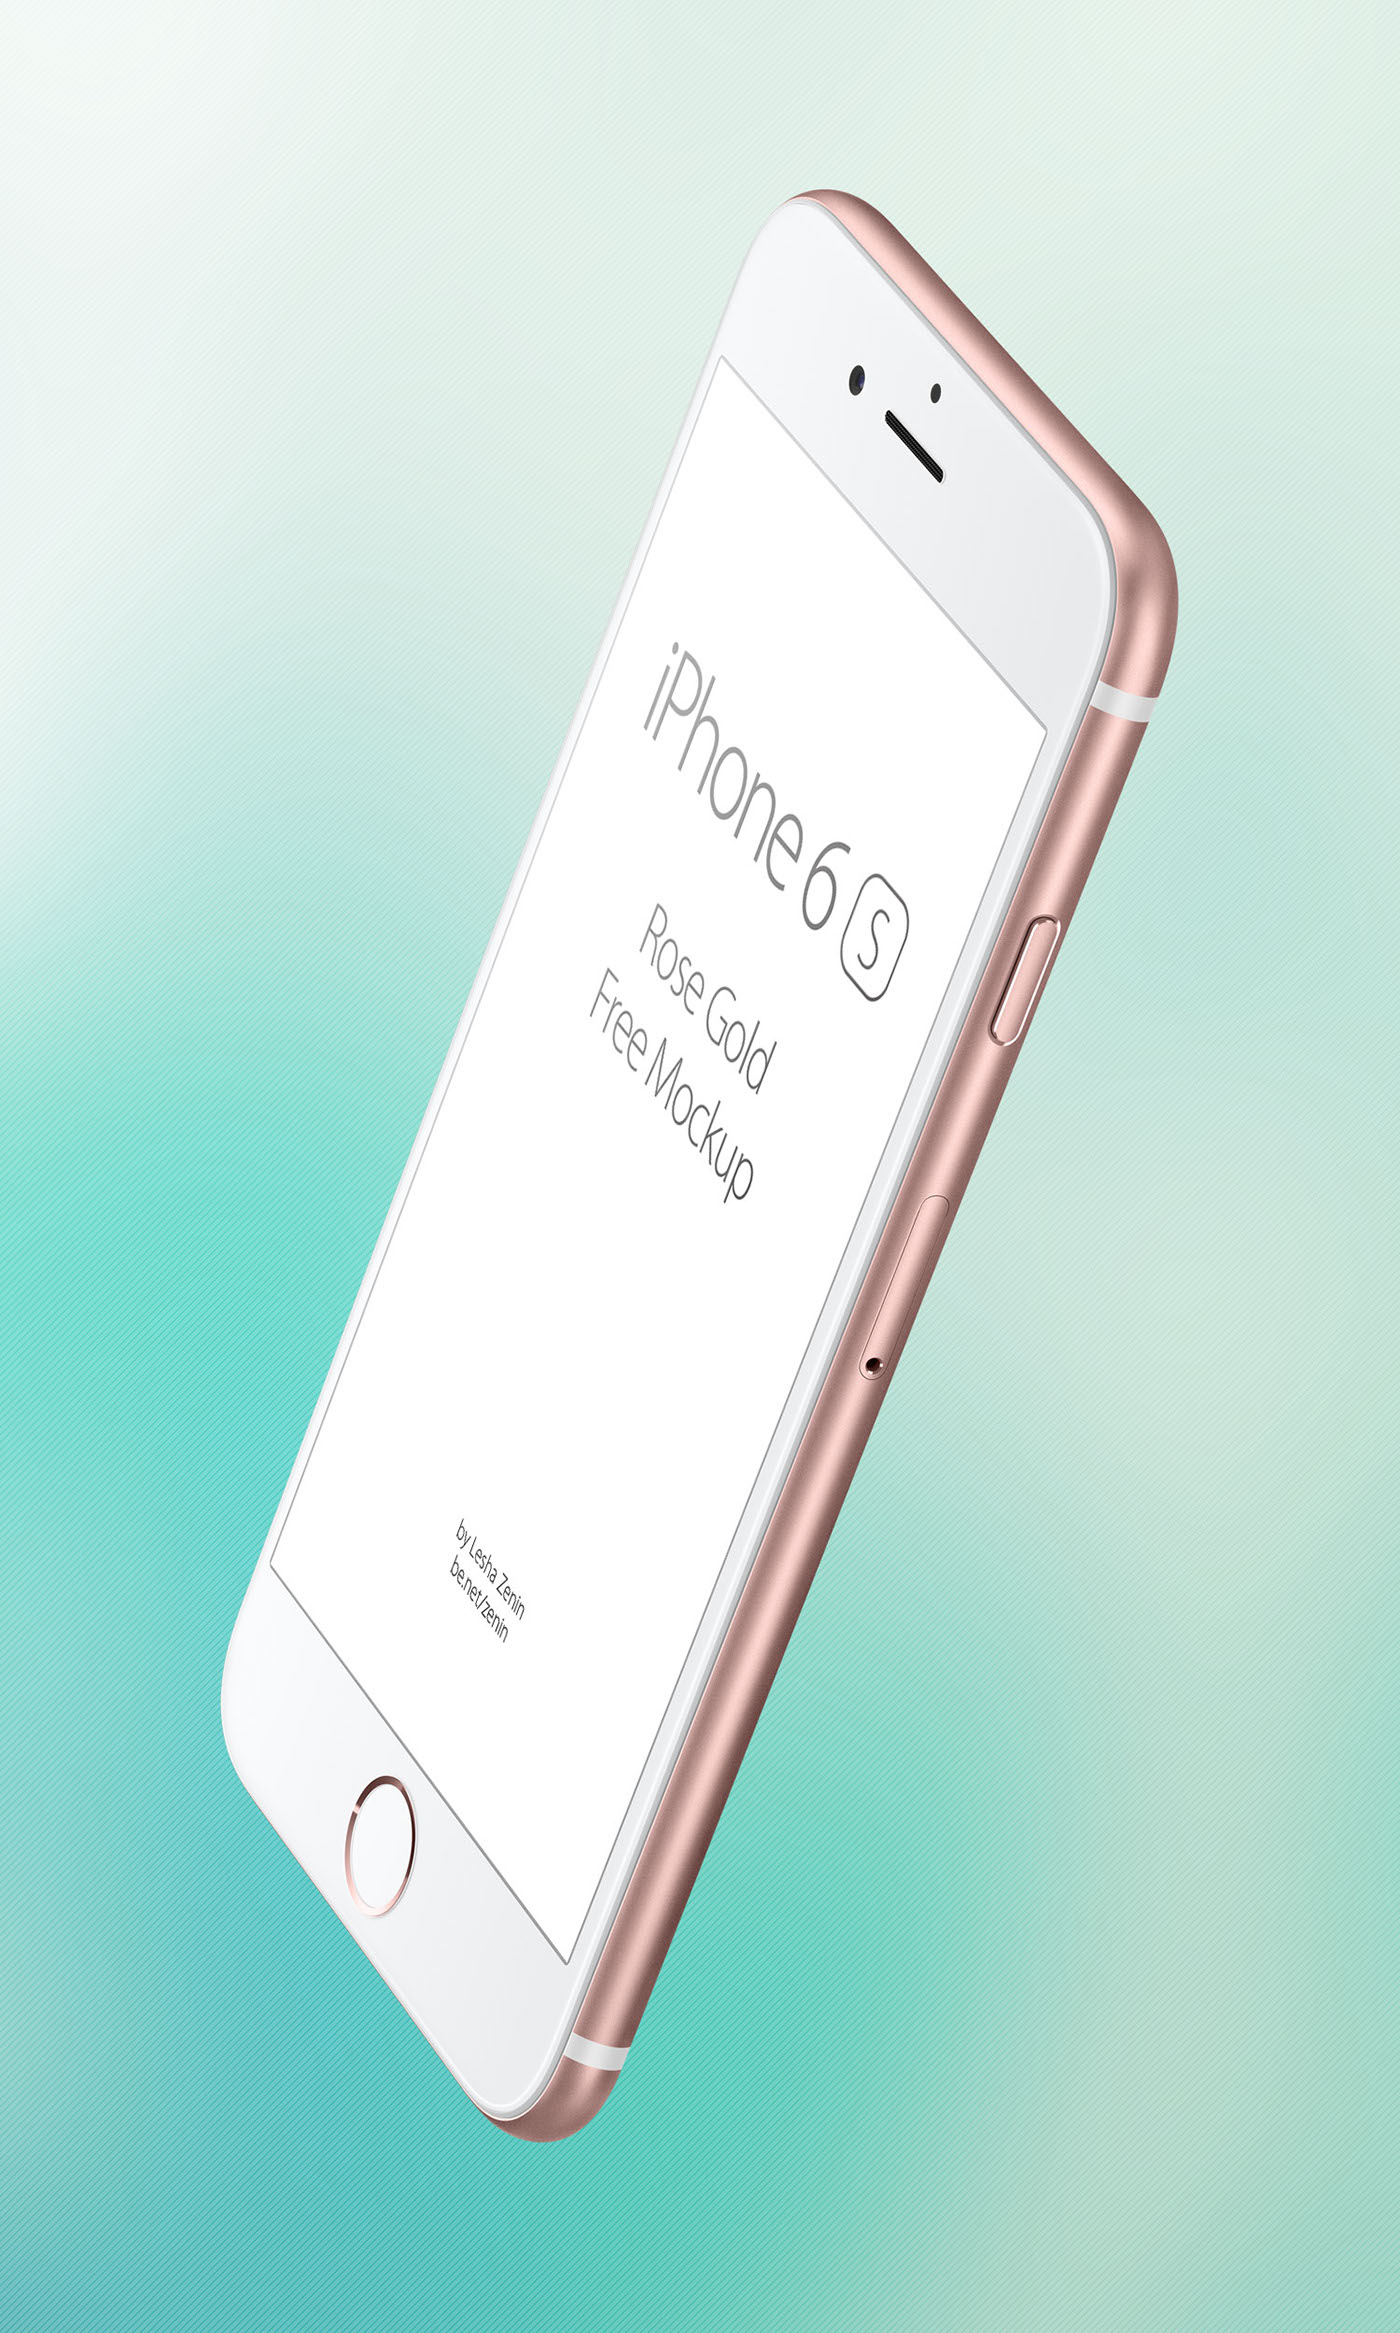 iphone gold rose iphone 6s gold free psd mockup on behance 1400